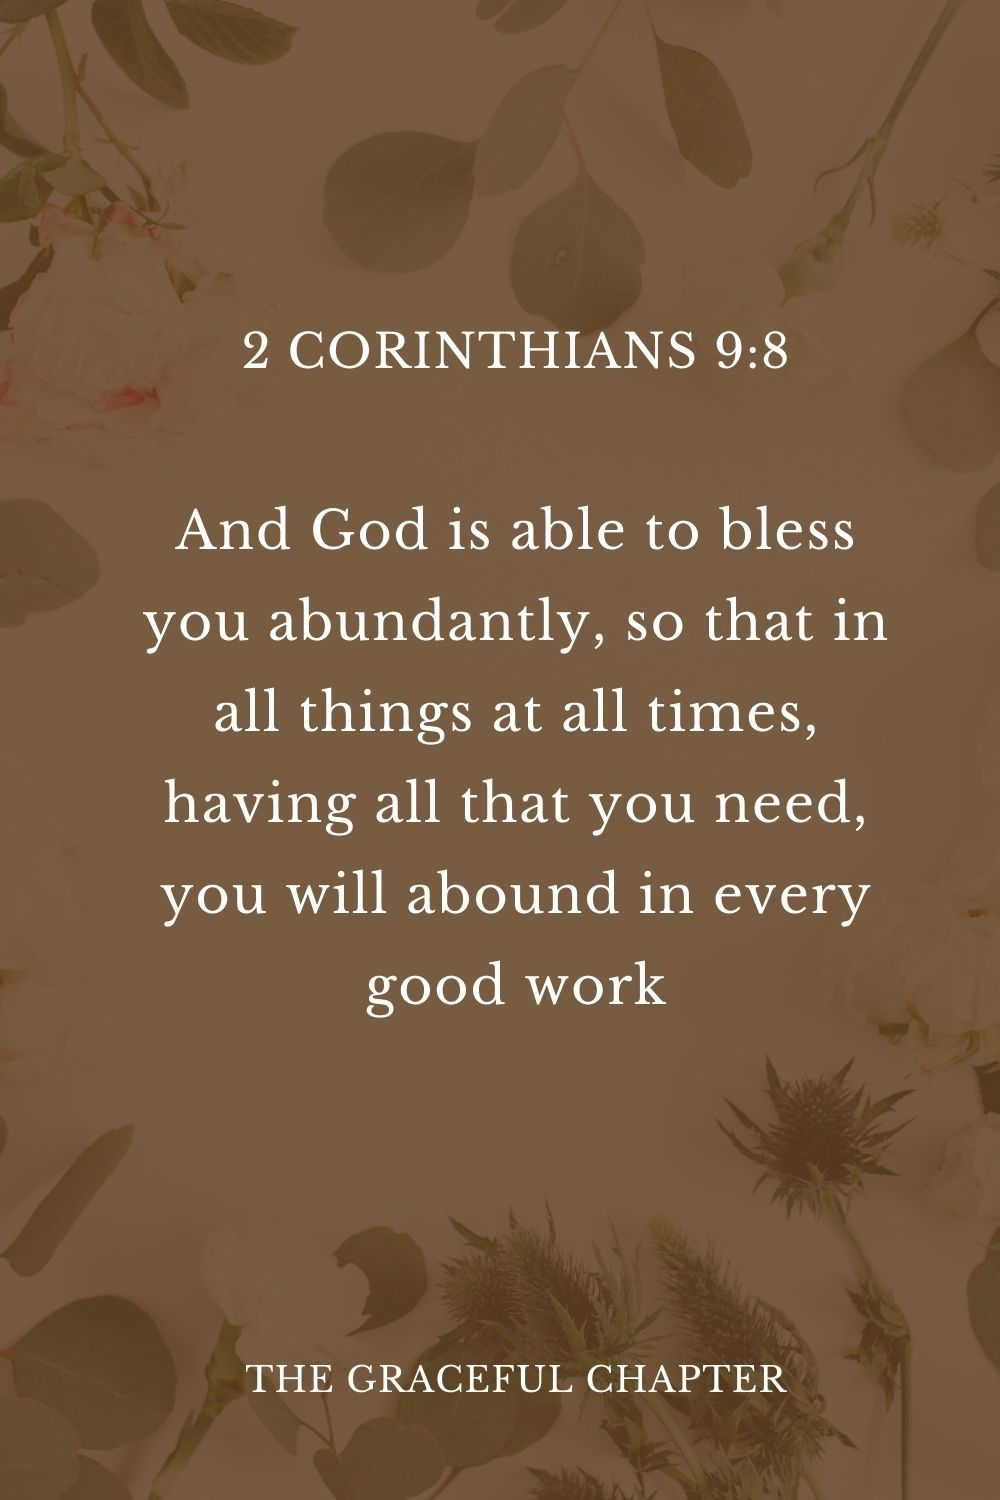 And God is able to bless you abundantly, so that in all things at all times, having all that you need, you will abound in every good work. 2 Corinthians 9:8